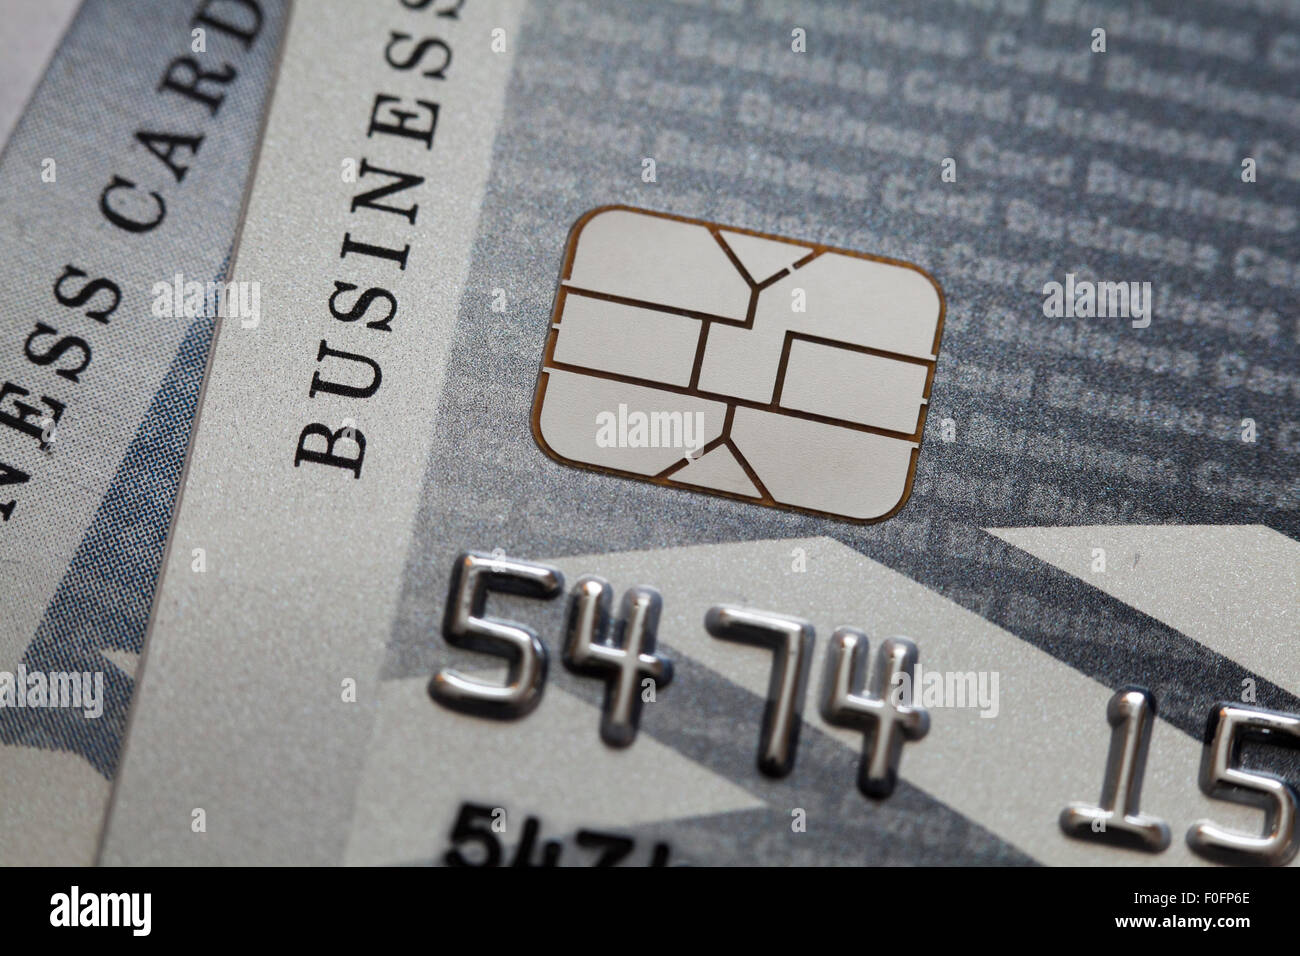 Bank business credit cards image collections free business cards bank of america business credit card security chip usa stock bank of america business credit card magicingreecefo Images